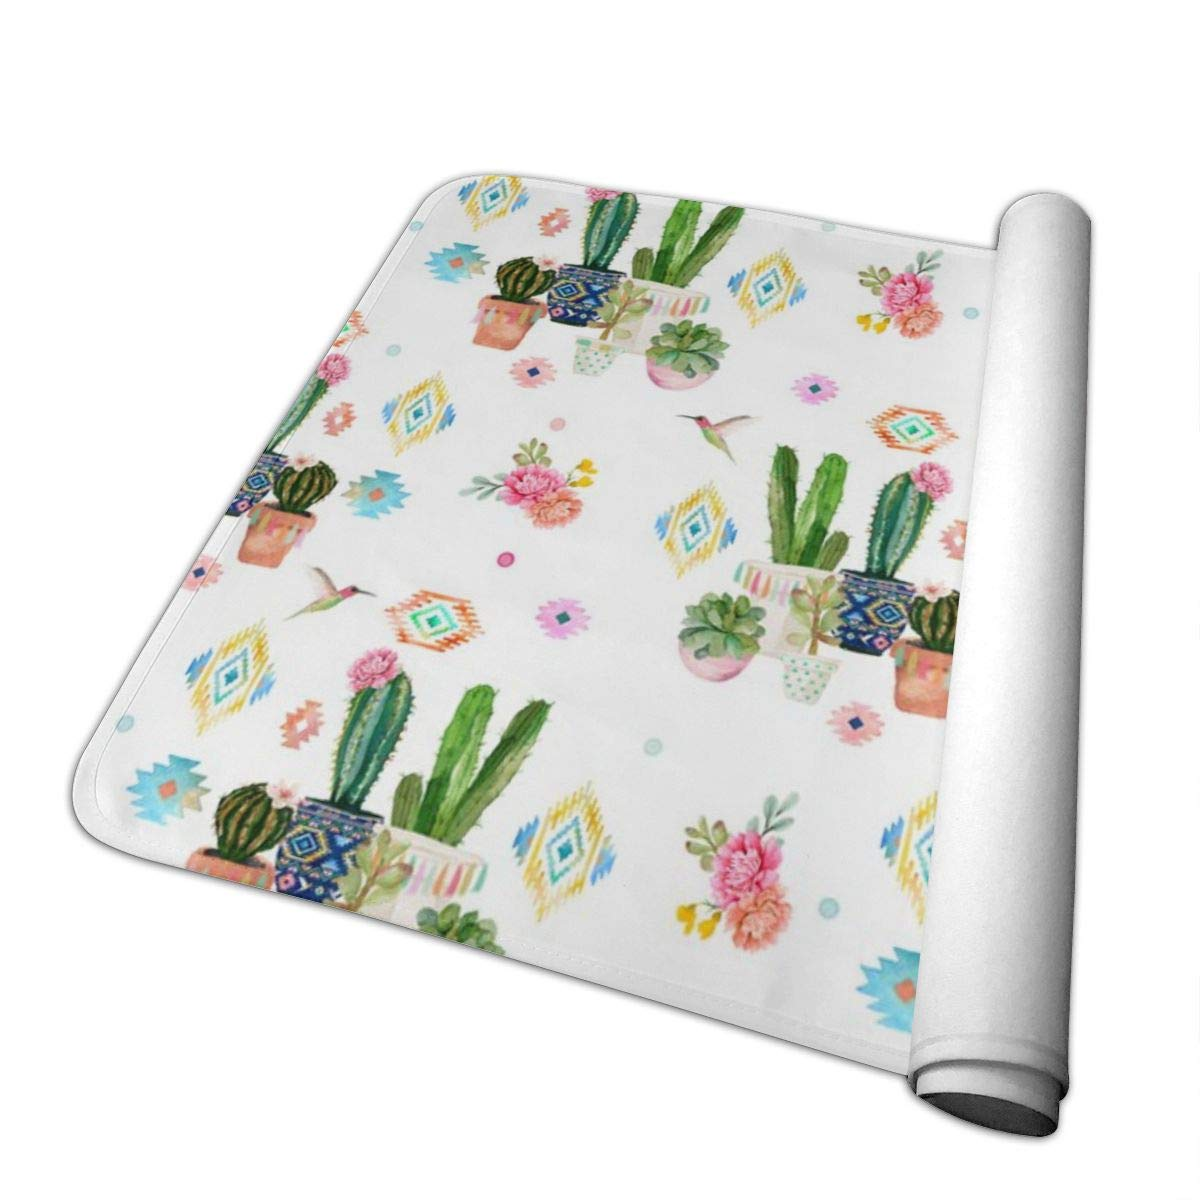 Amazon.com : Baby Reusable Diaper Changing Pad - Valladolid ...